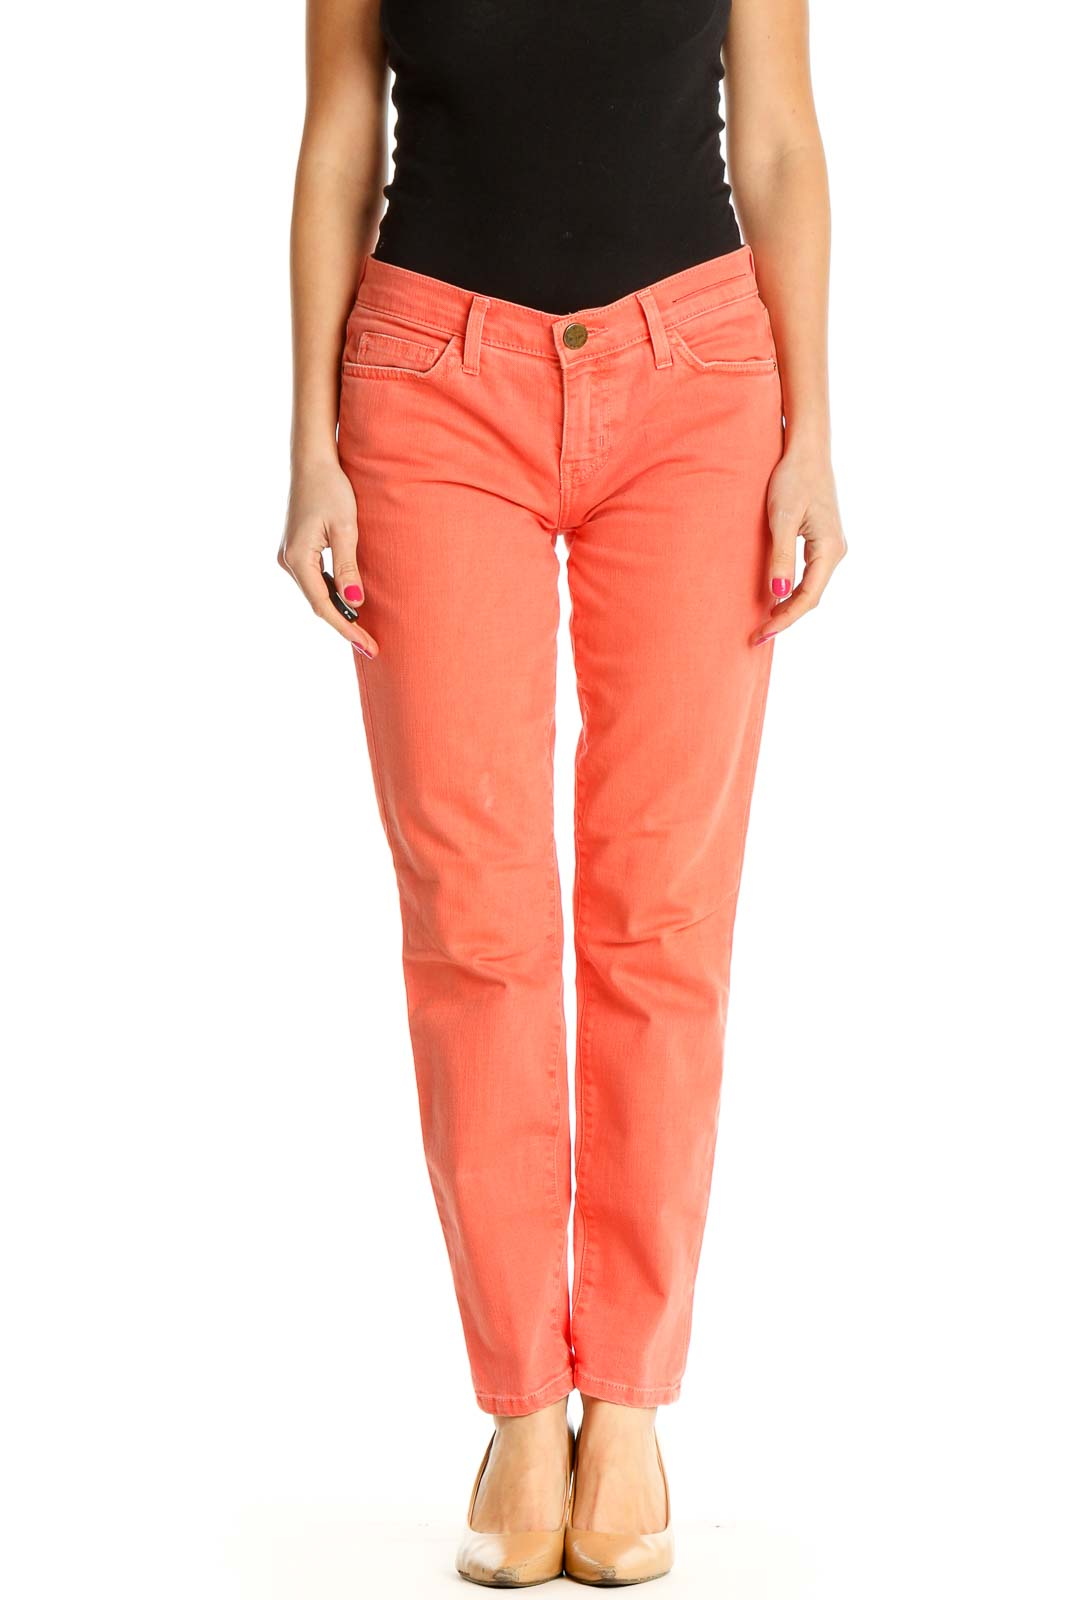 Orange Solid Casual Trousers Front